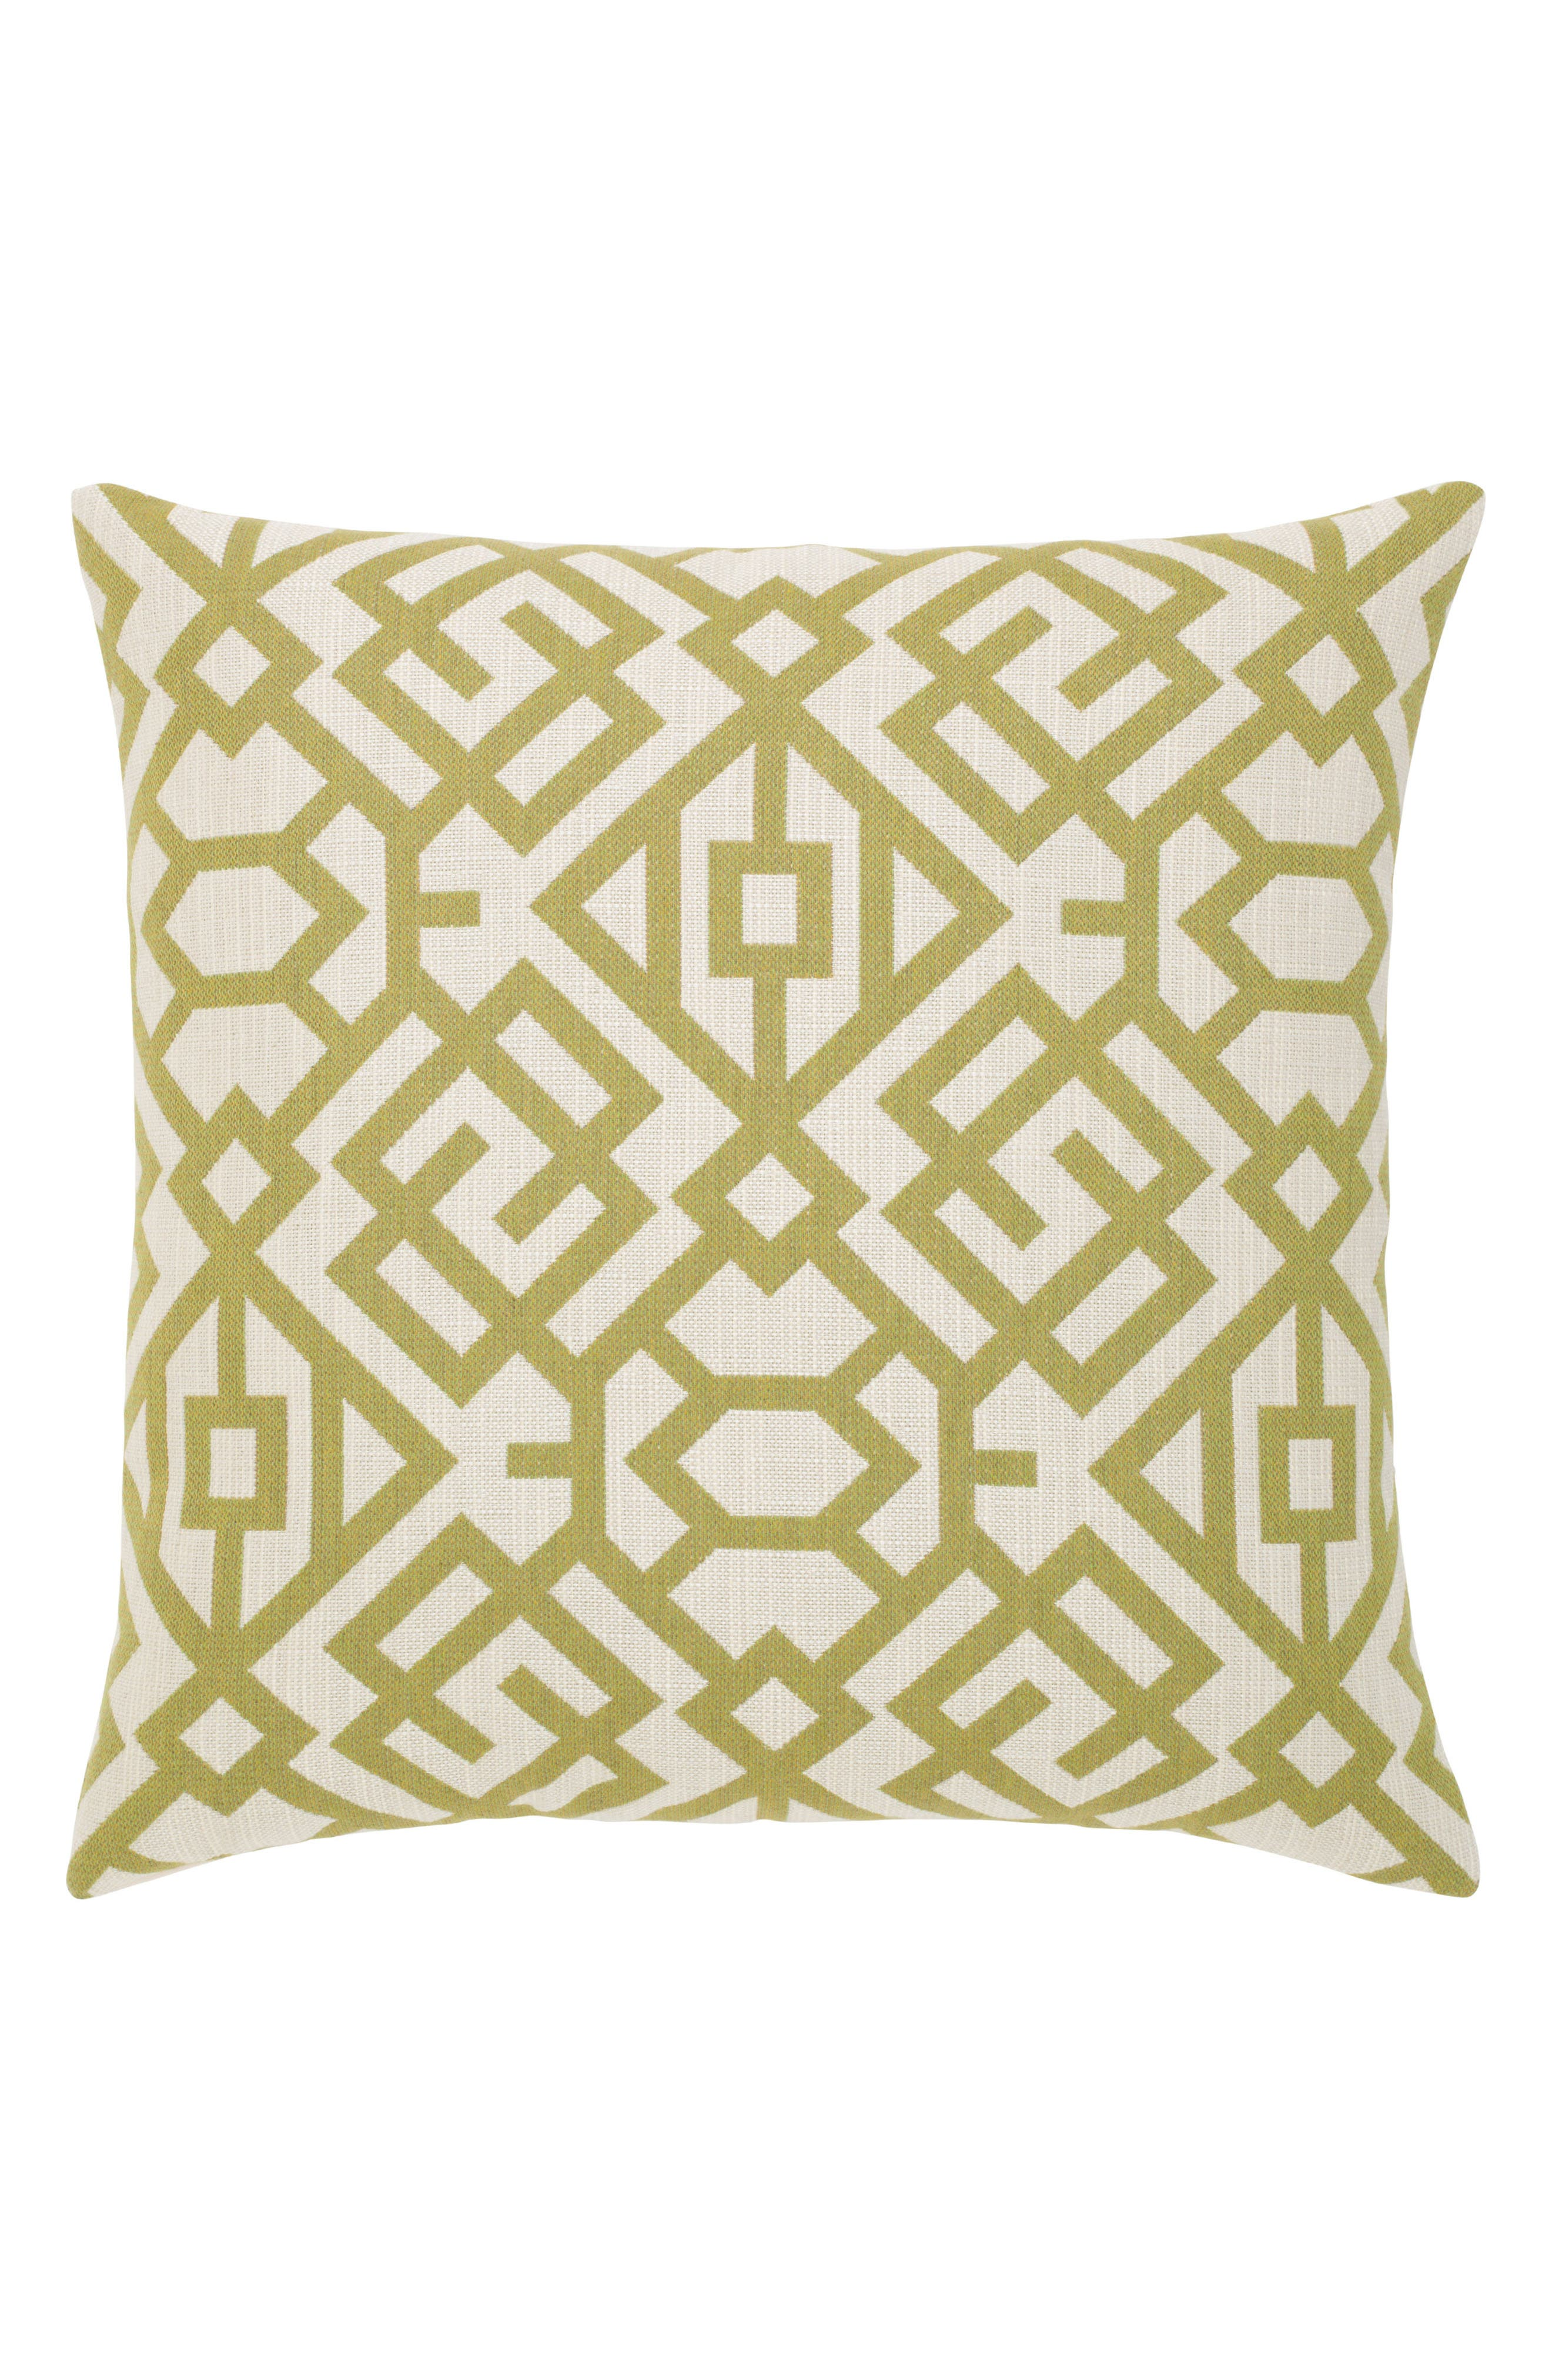 Elaine Smith Fern Gate Indoor/Outdoor Accent Pillow